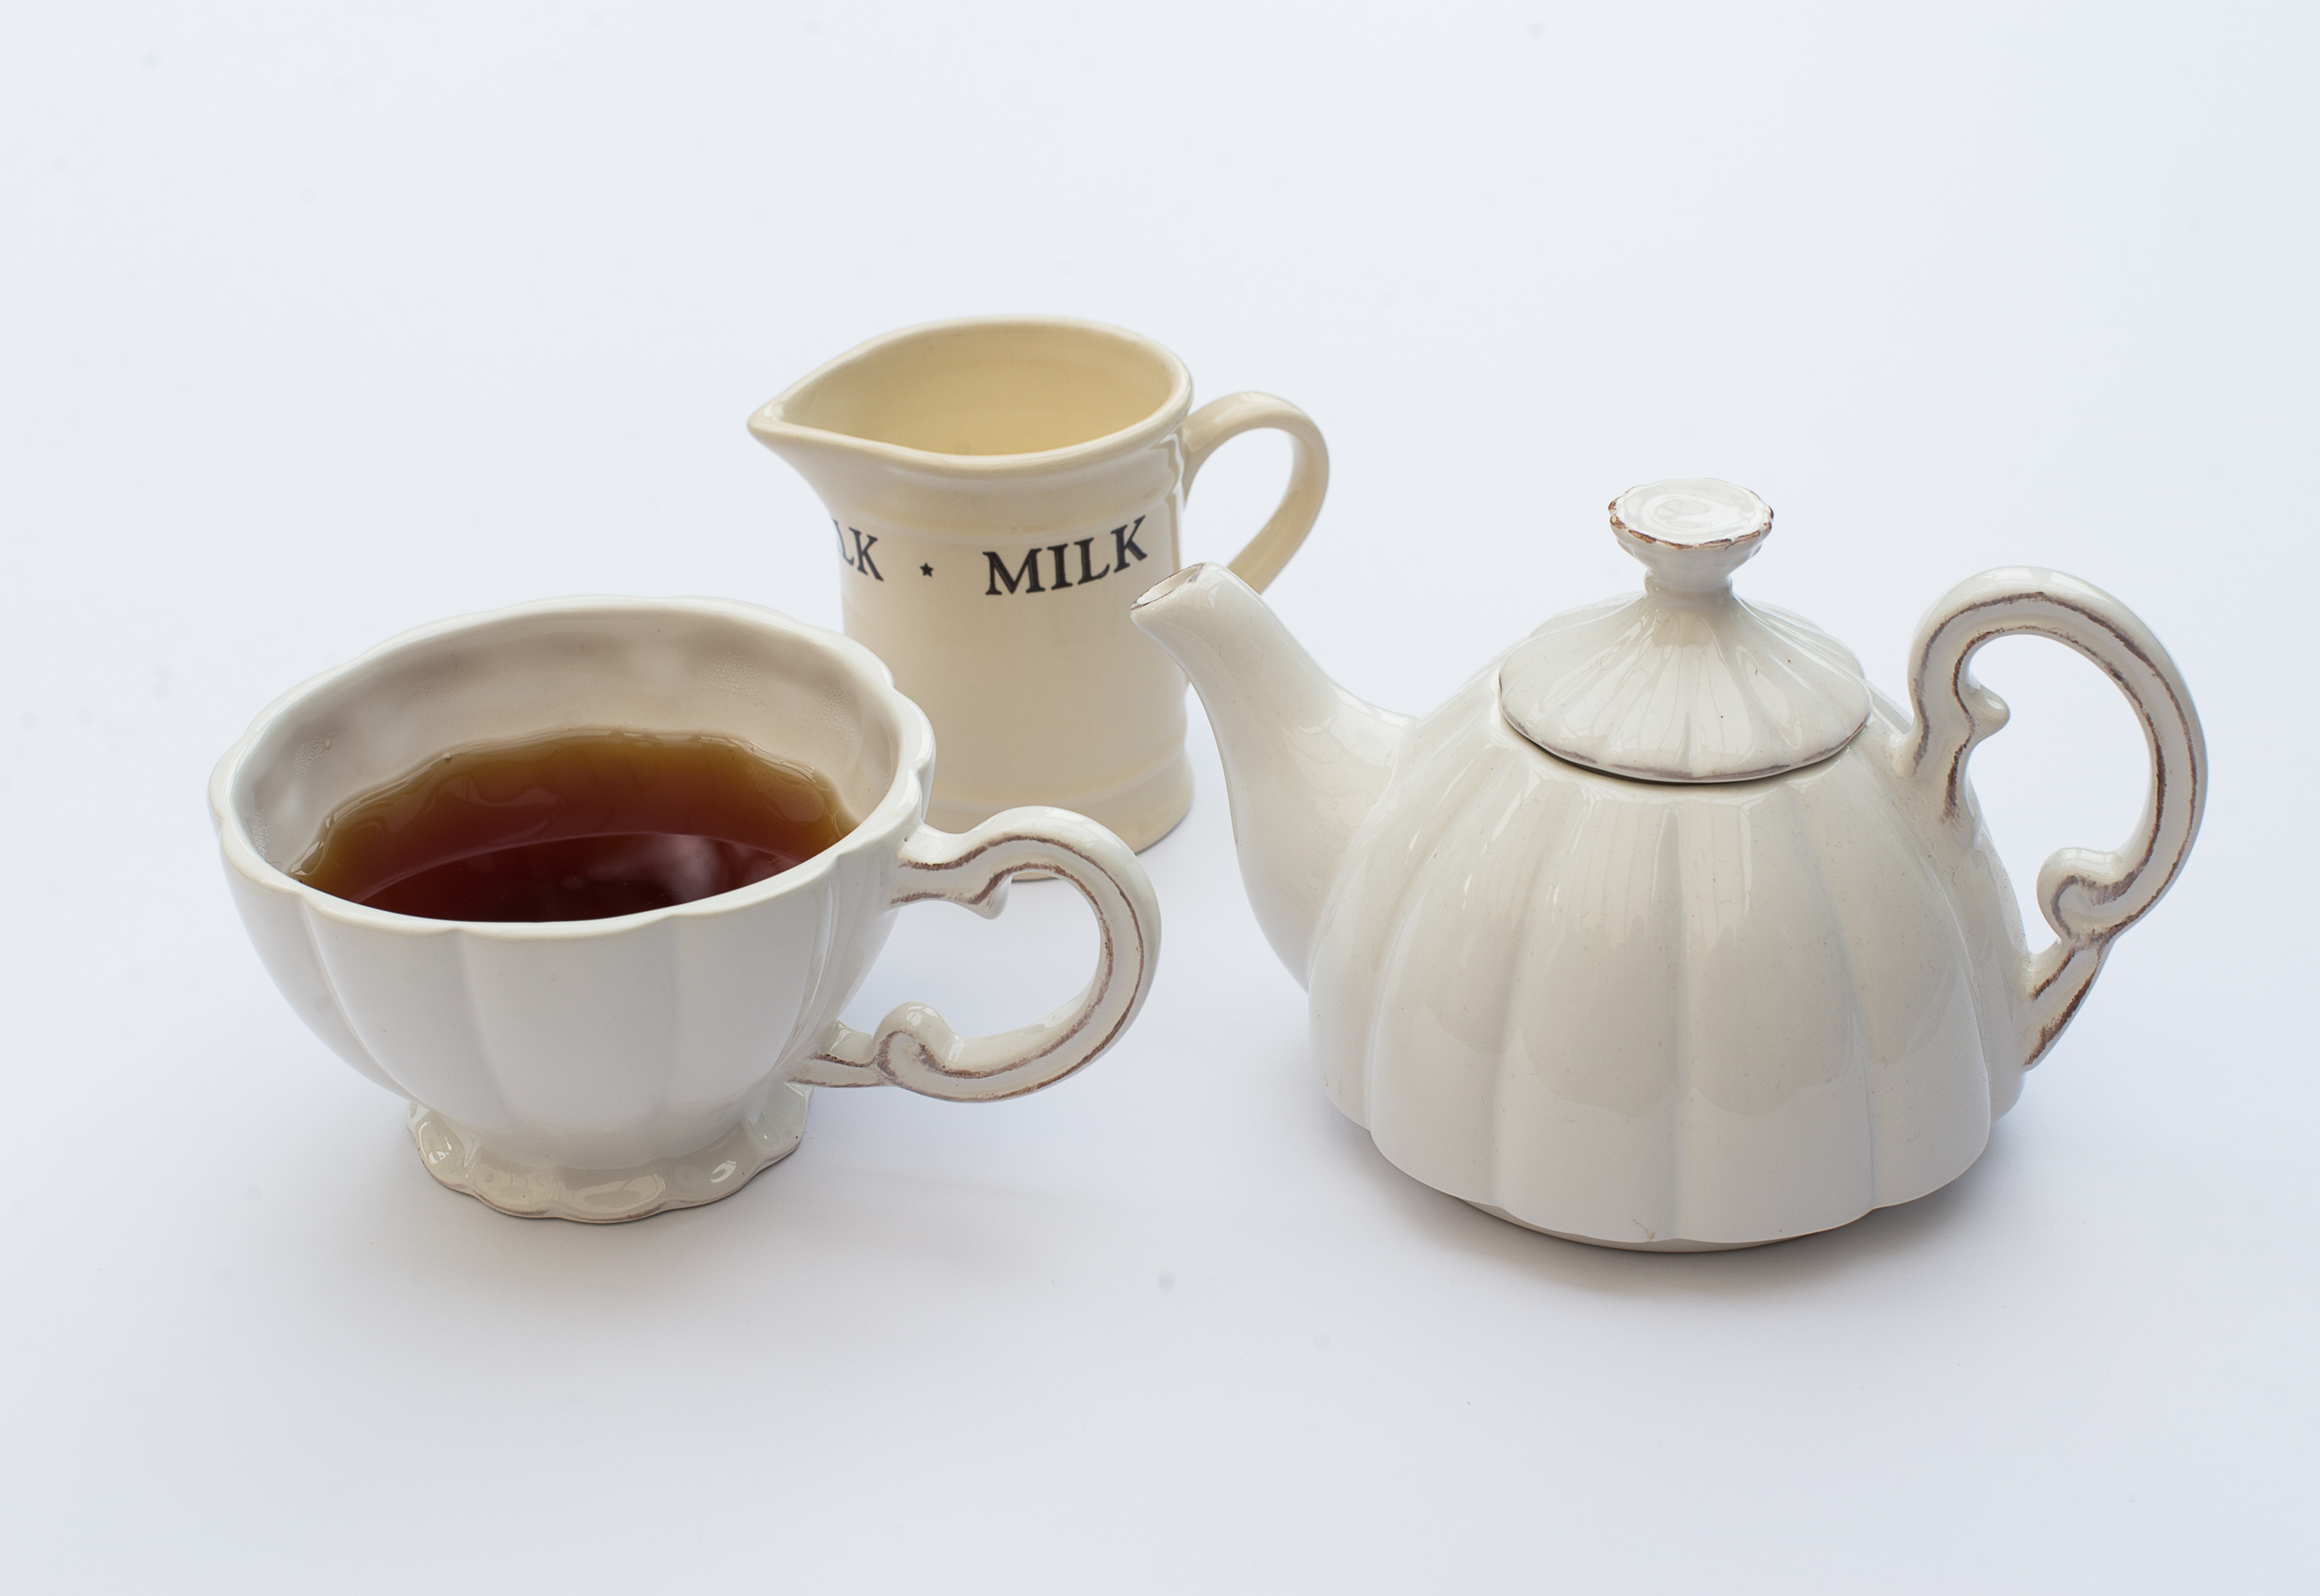 A cup of black tea with milk jug and tea pot by www.englishcreamtea.com